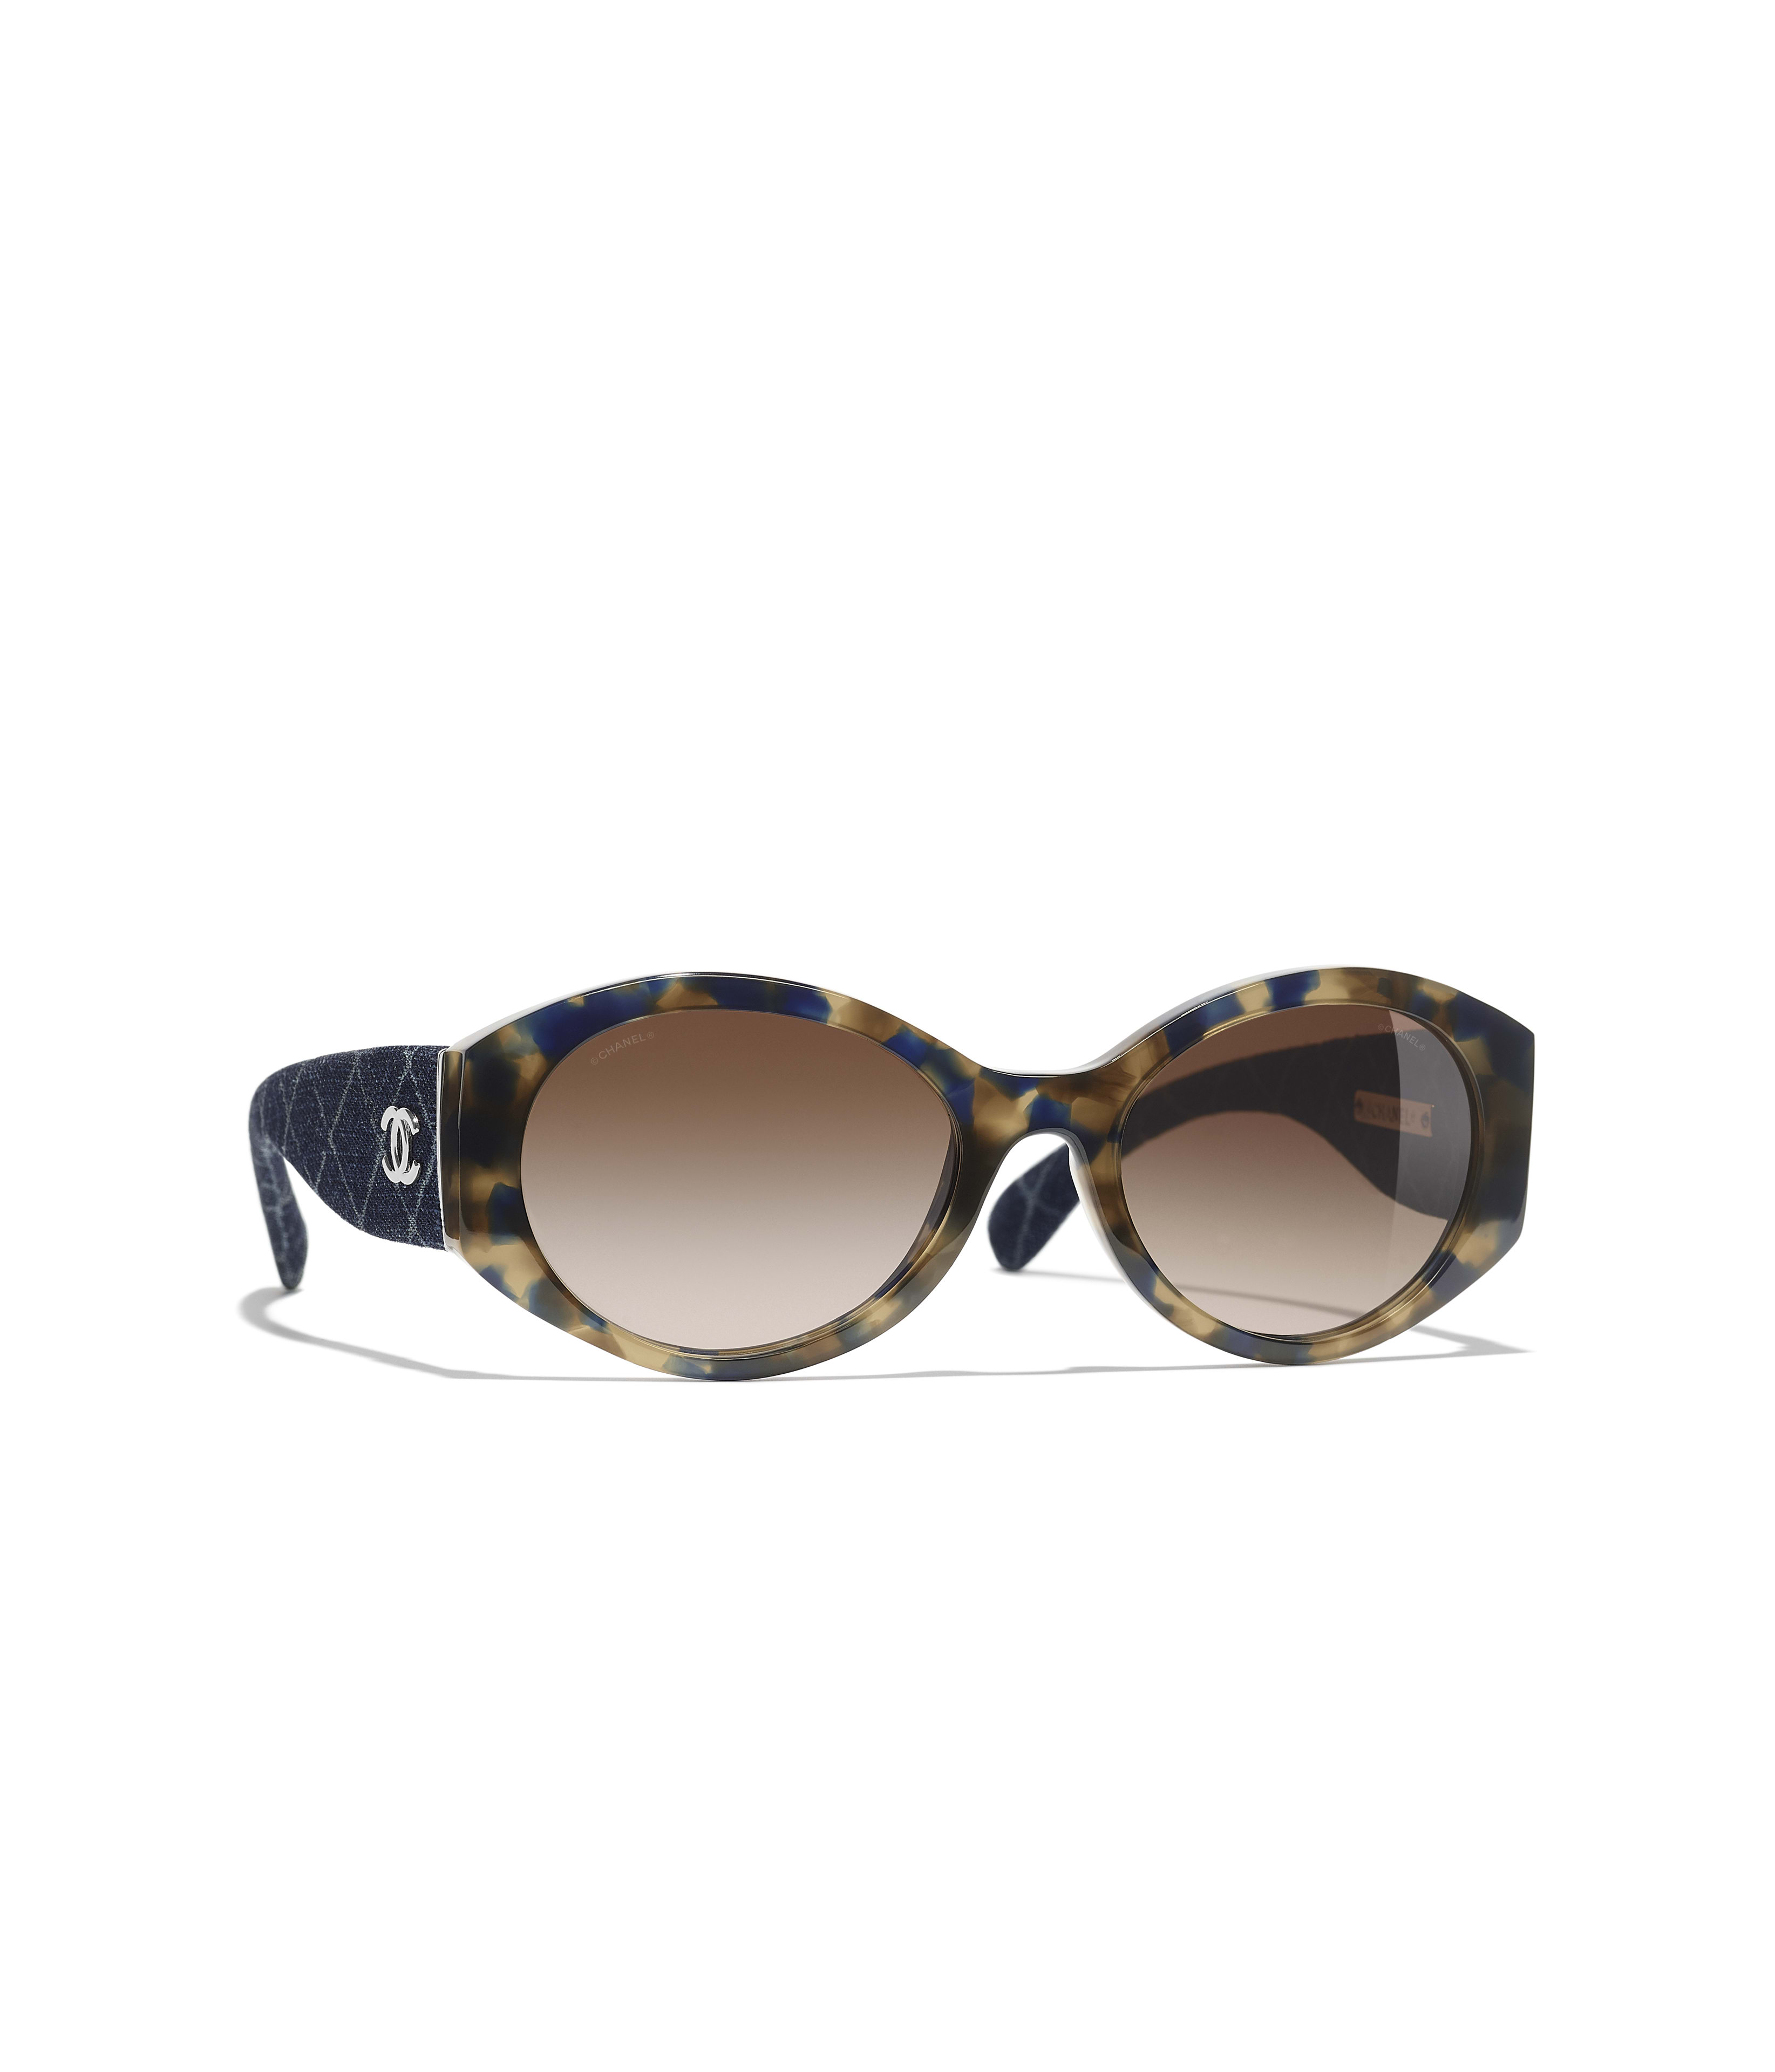 ce6ec14d1676 Sunglasses - CHANEL